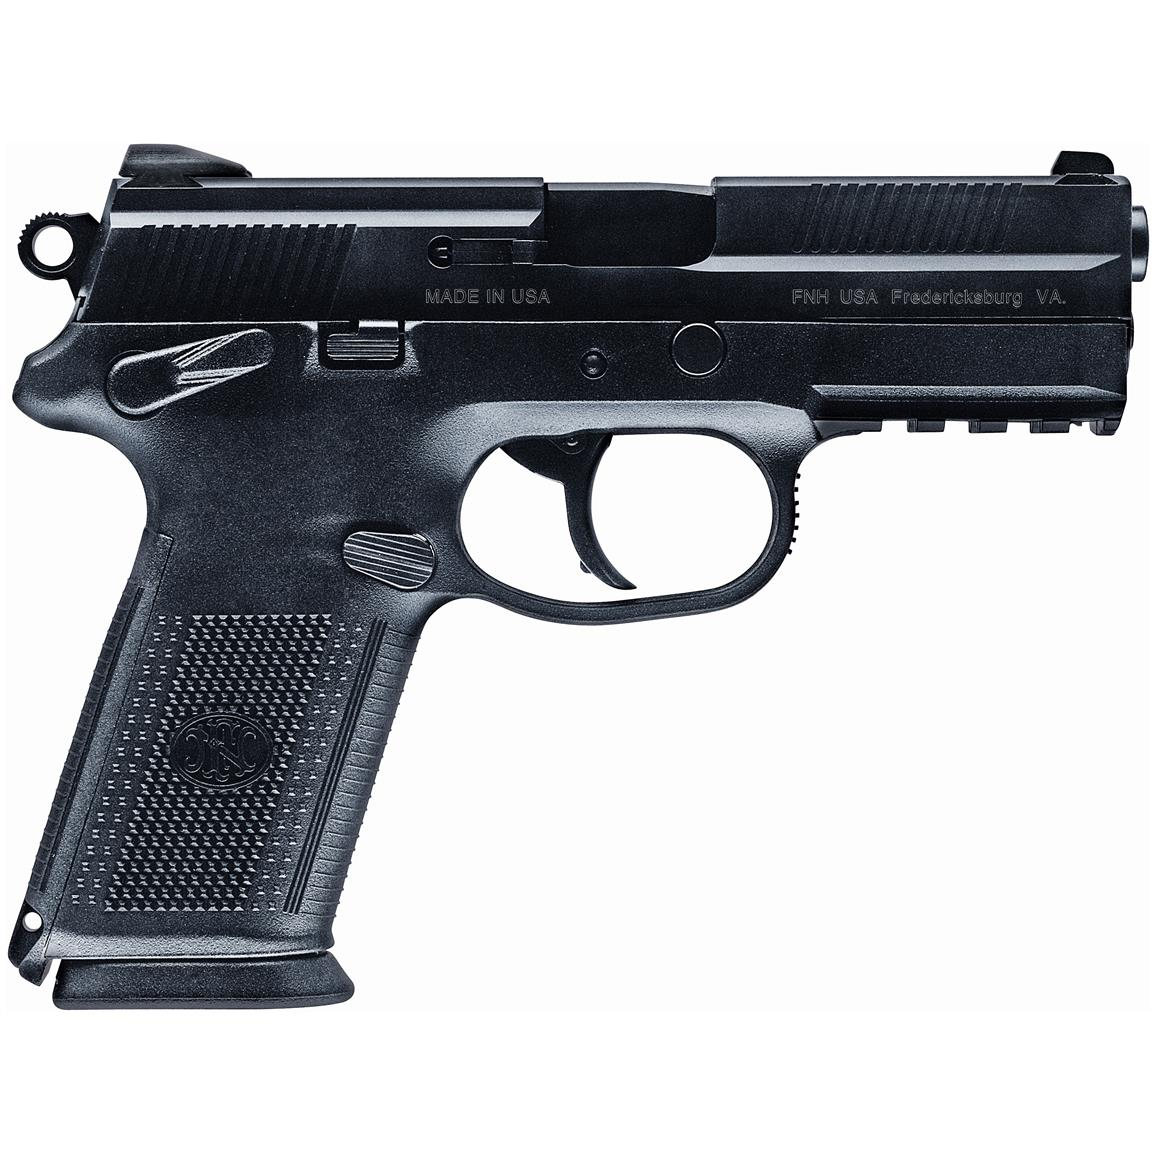 "FNH FNX-45, Semi-automatic, .45 ACP, 4.5"" Barrel, 15+1 Rounds"